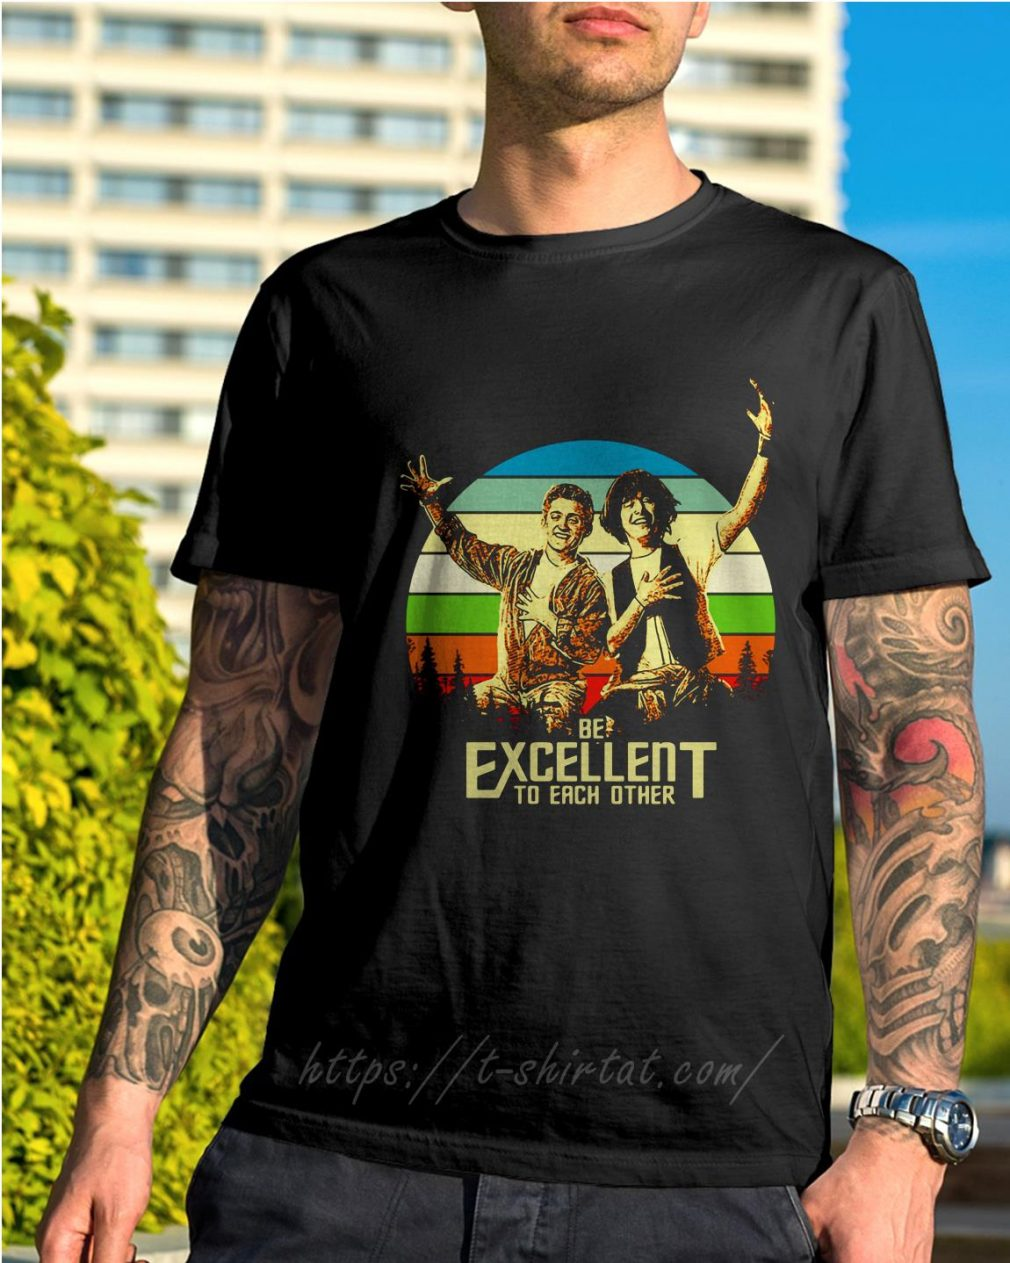 Bill and Ted's be excellent to each other vintage shirt